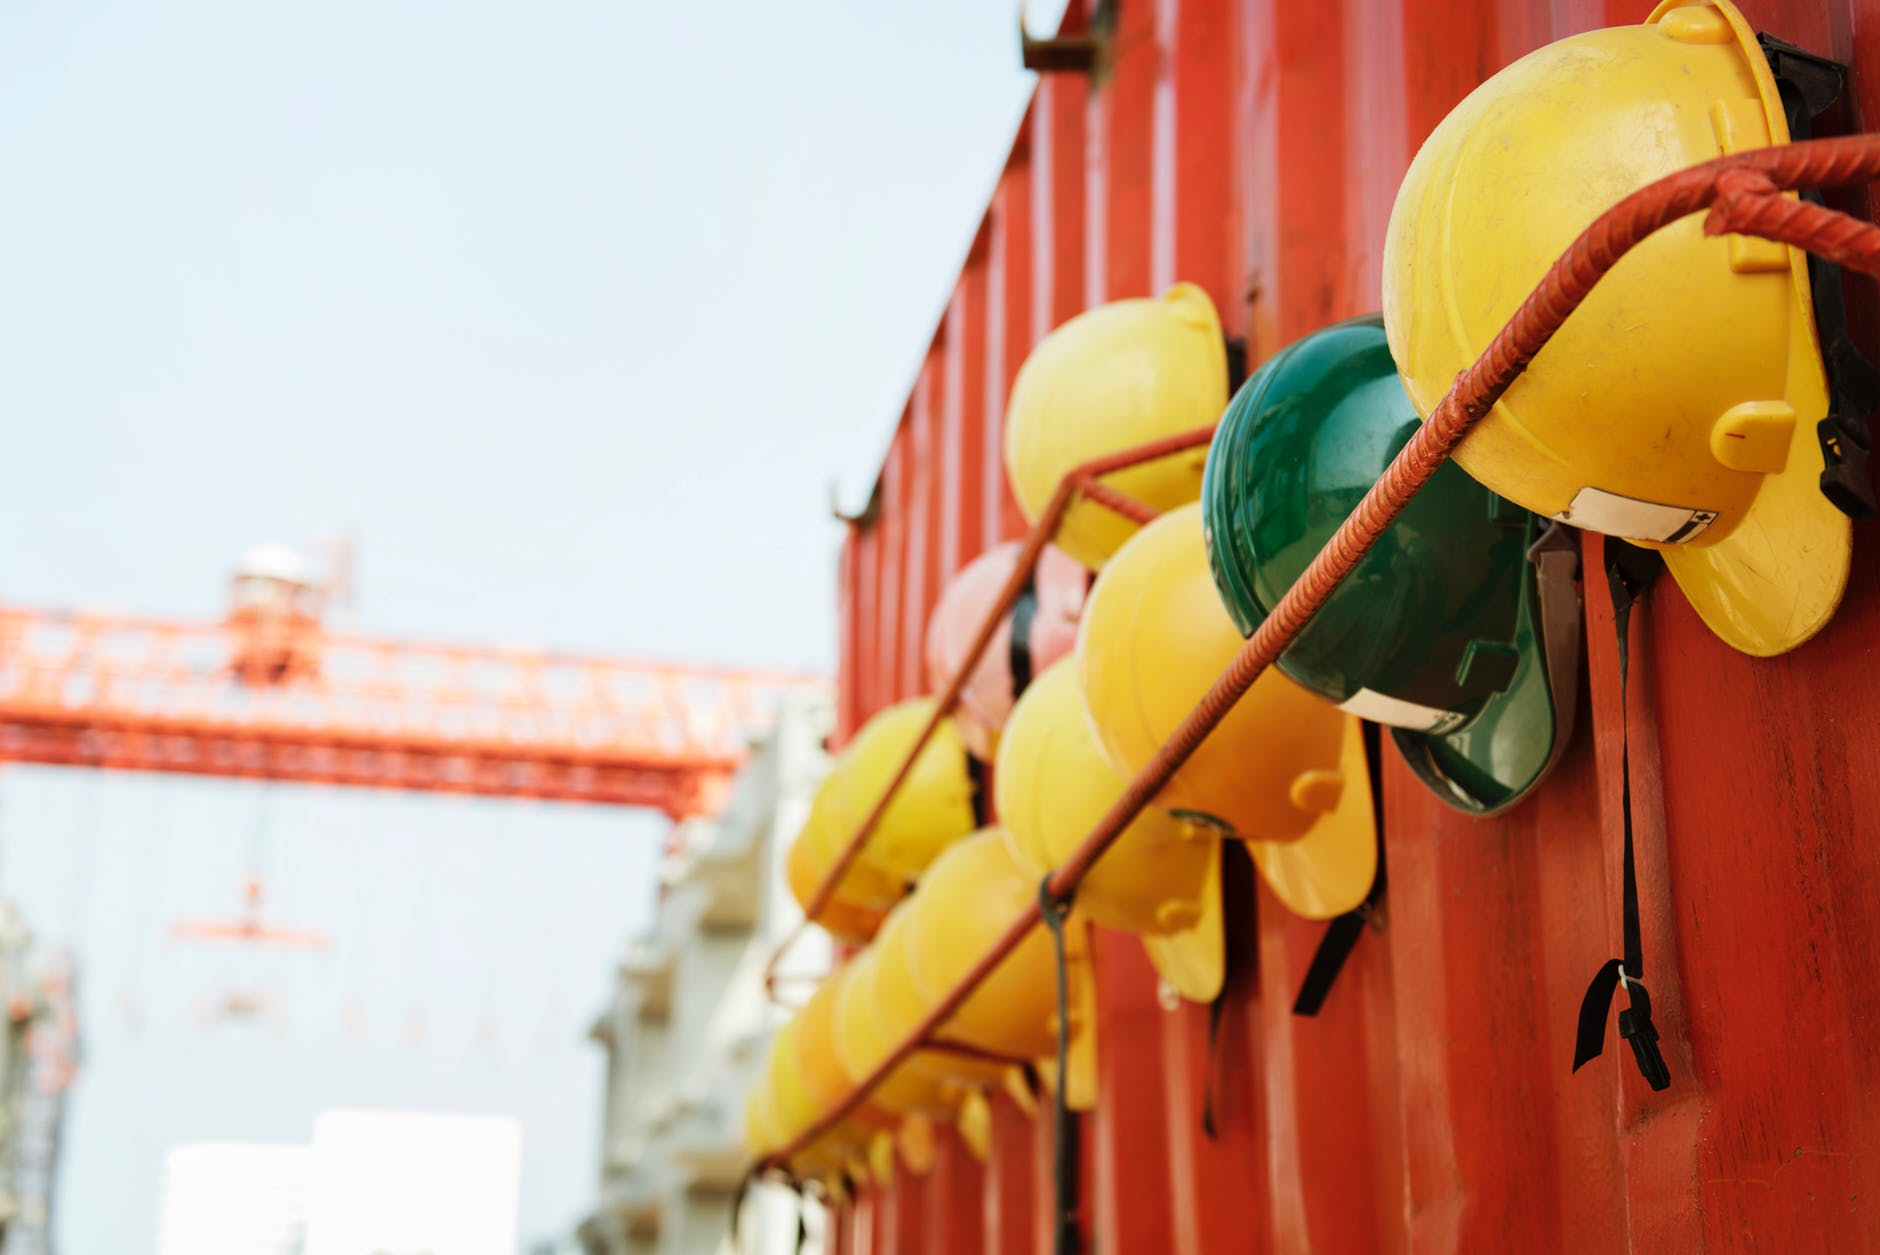 4 Things to Consider for Workplace Safety by Martin Lloyd Sanders